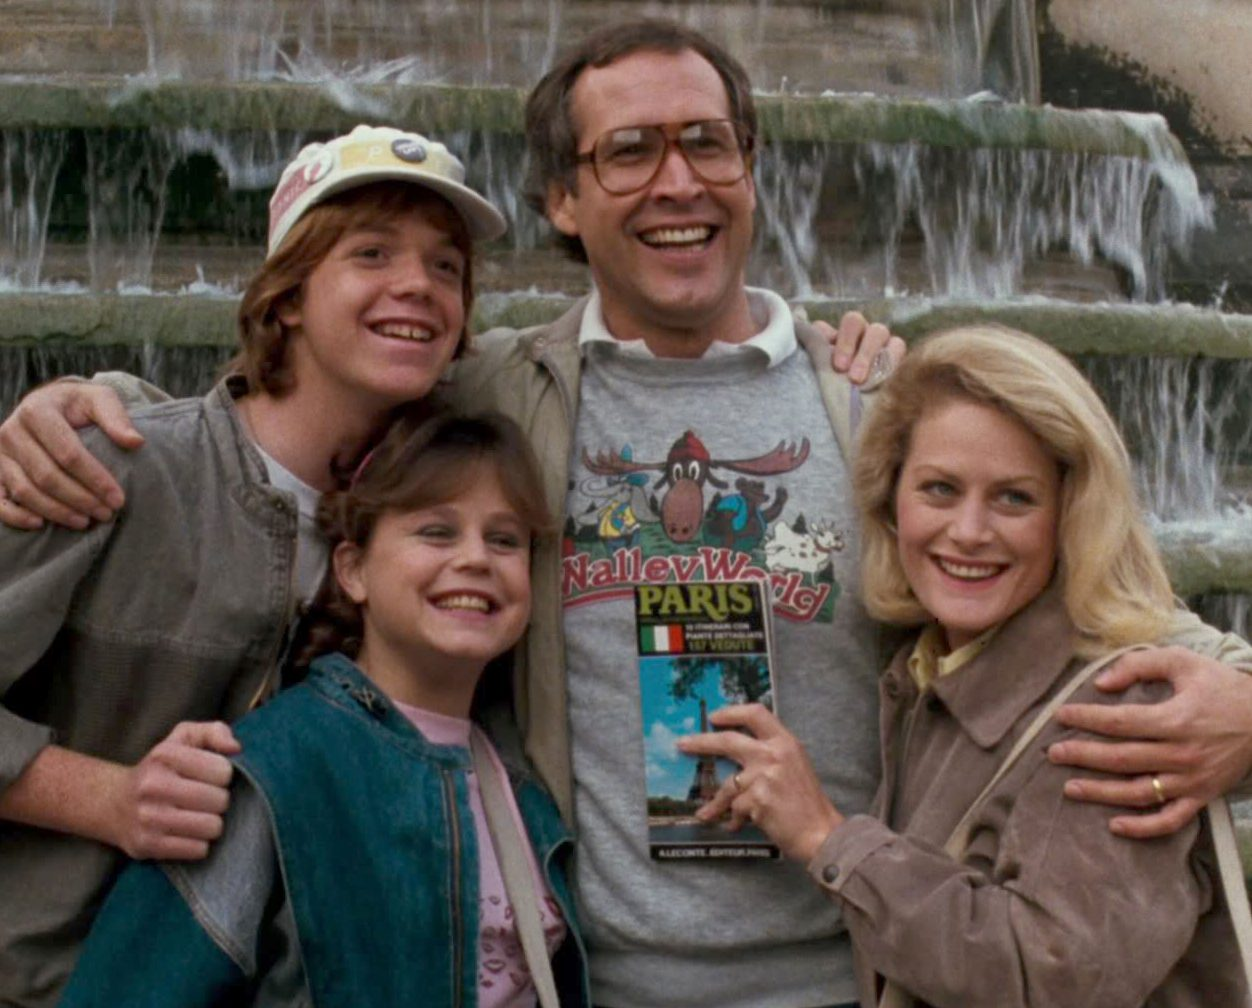 wb 85406 SVOD Full Image GalleryBackground en GB 1483993558747. RI e1617019178297 30 Things You Probably Didn't Know About National Lampoon's Christmas Vacation